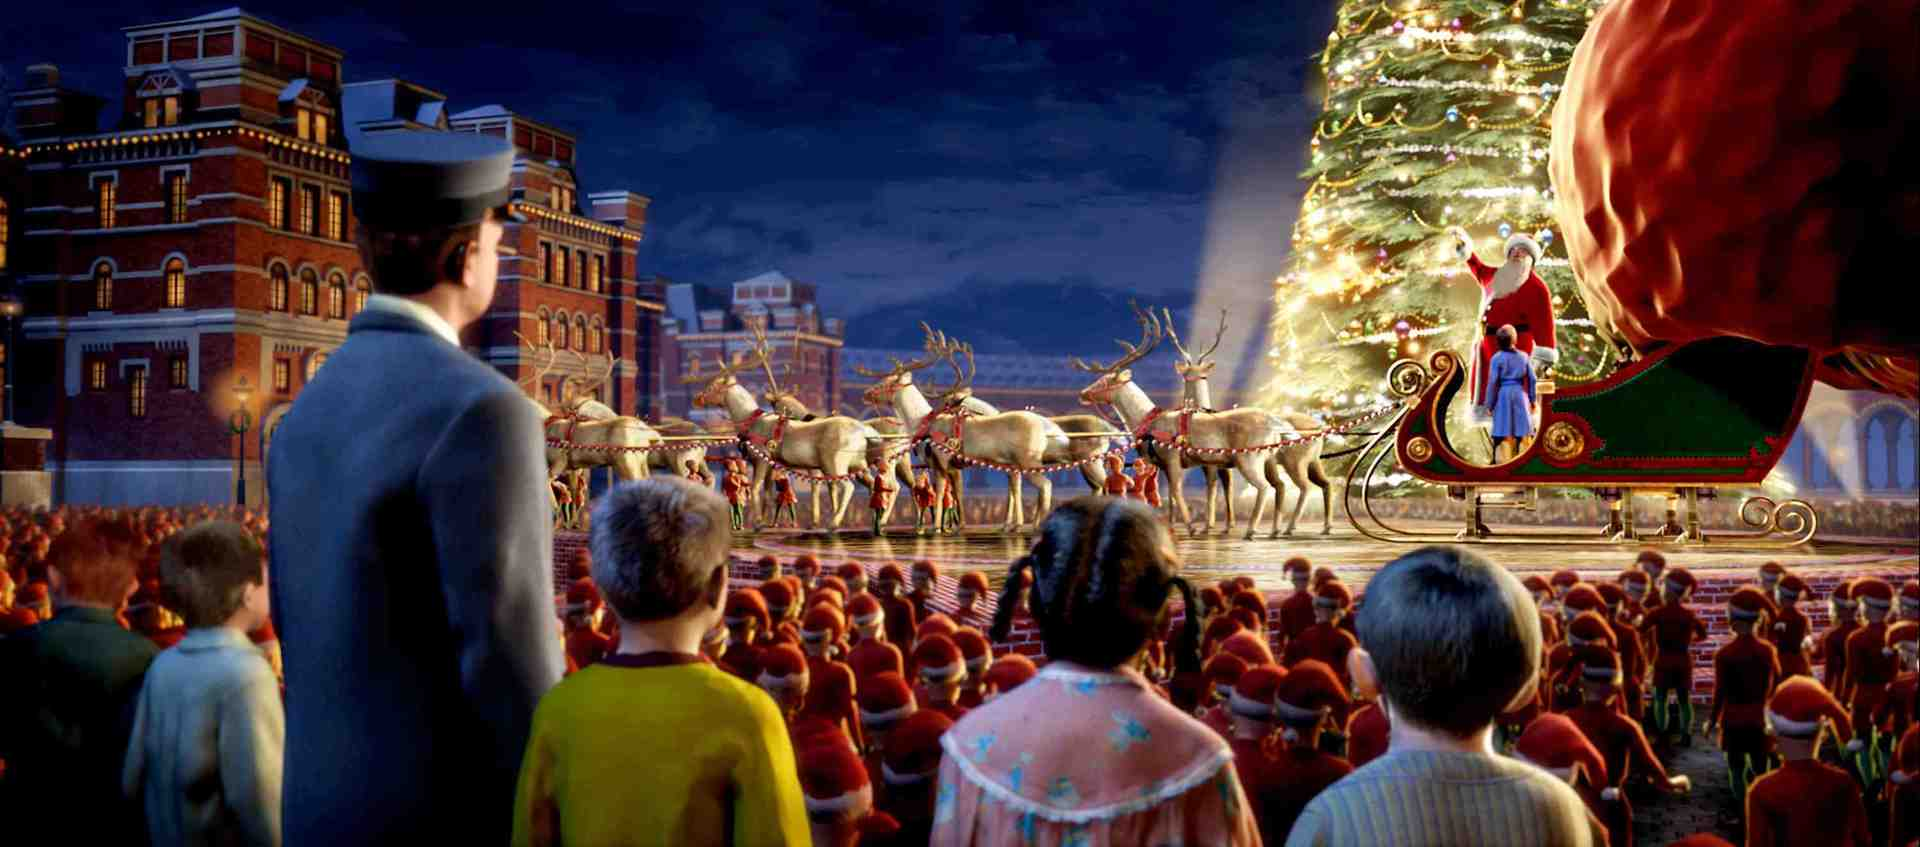 polar-express-movie-still.jpg